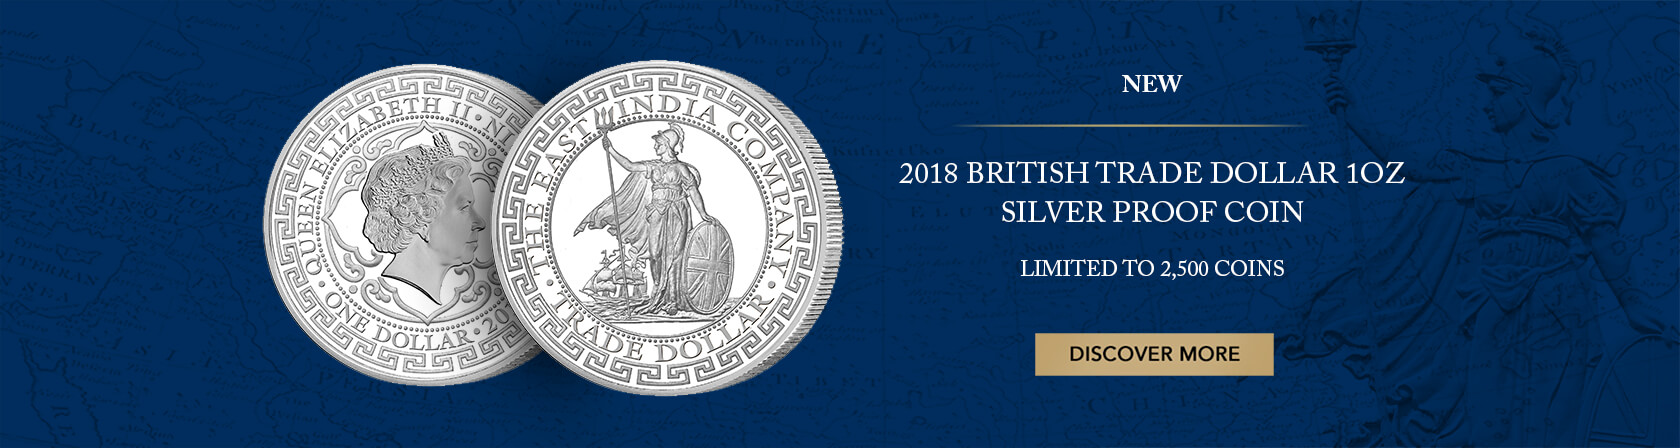 2018 BRITISH TRADE DOLLAR 1OZ SILVER PROOF COIN